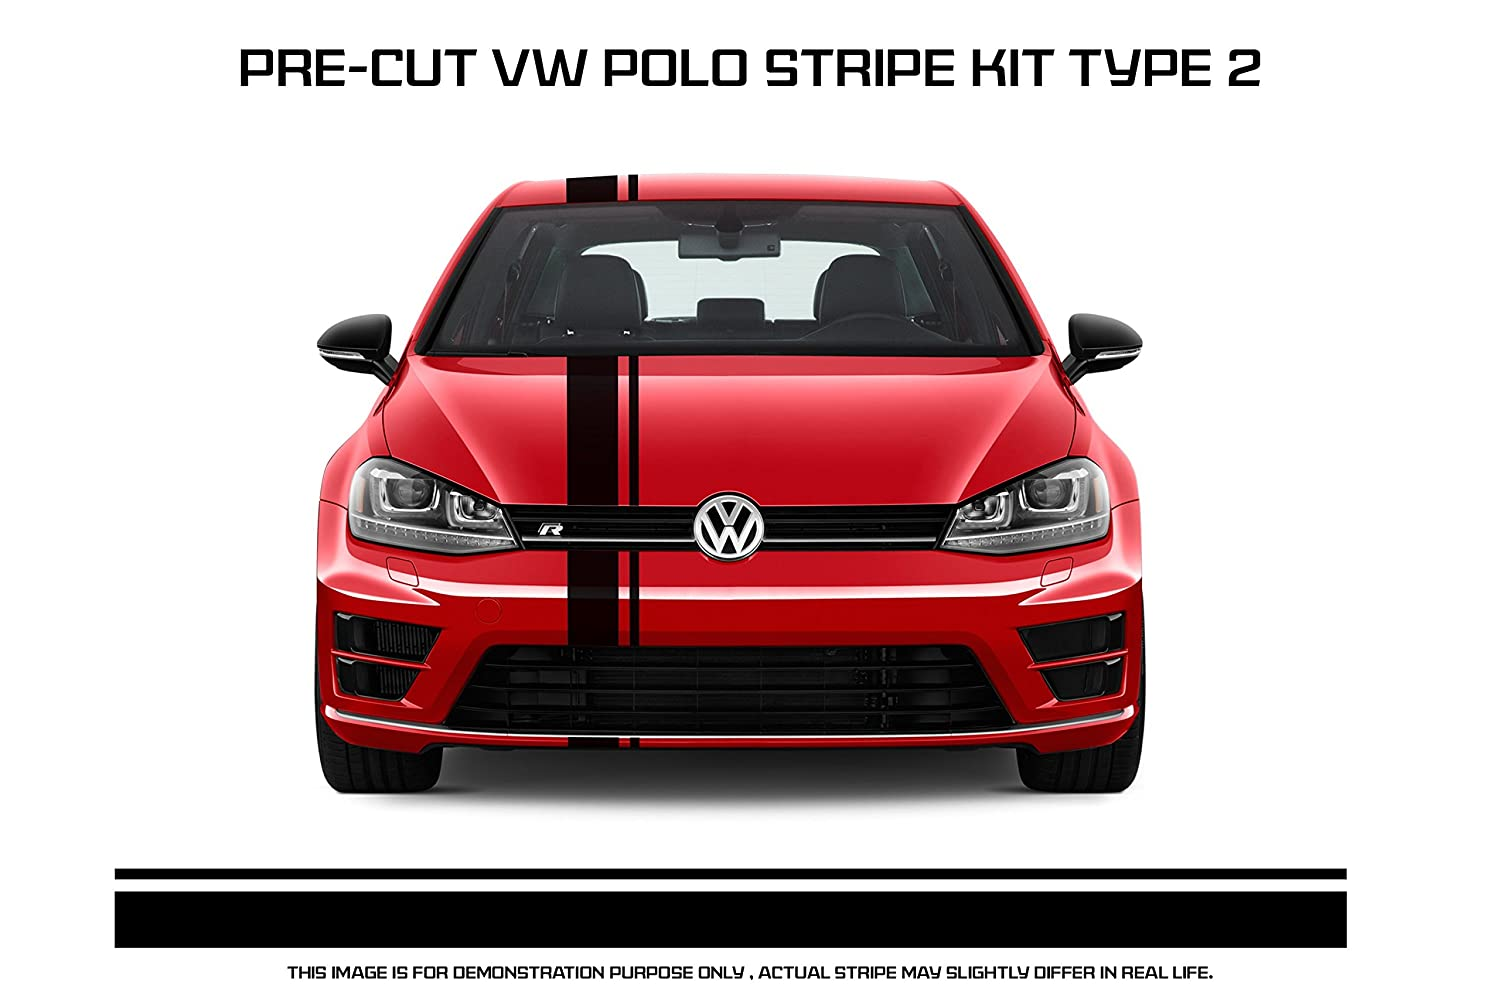 Vw polo racing stripe type 2 amazon in car motorbike